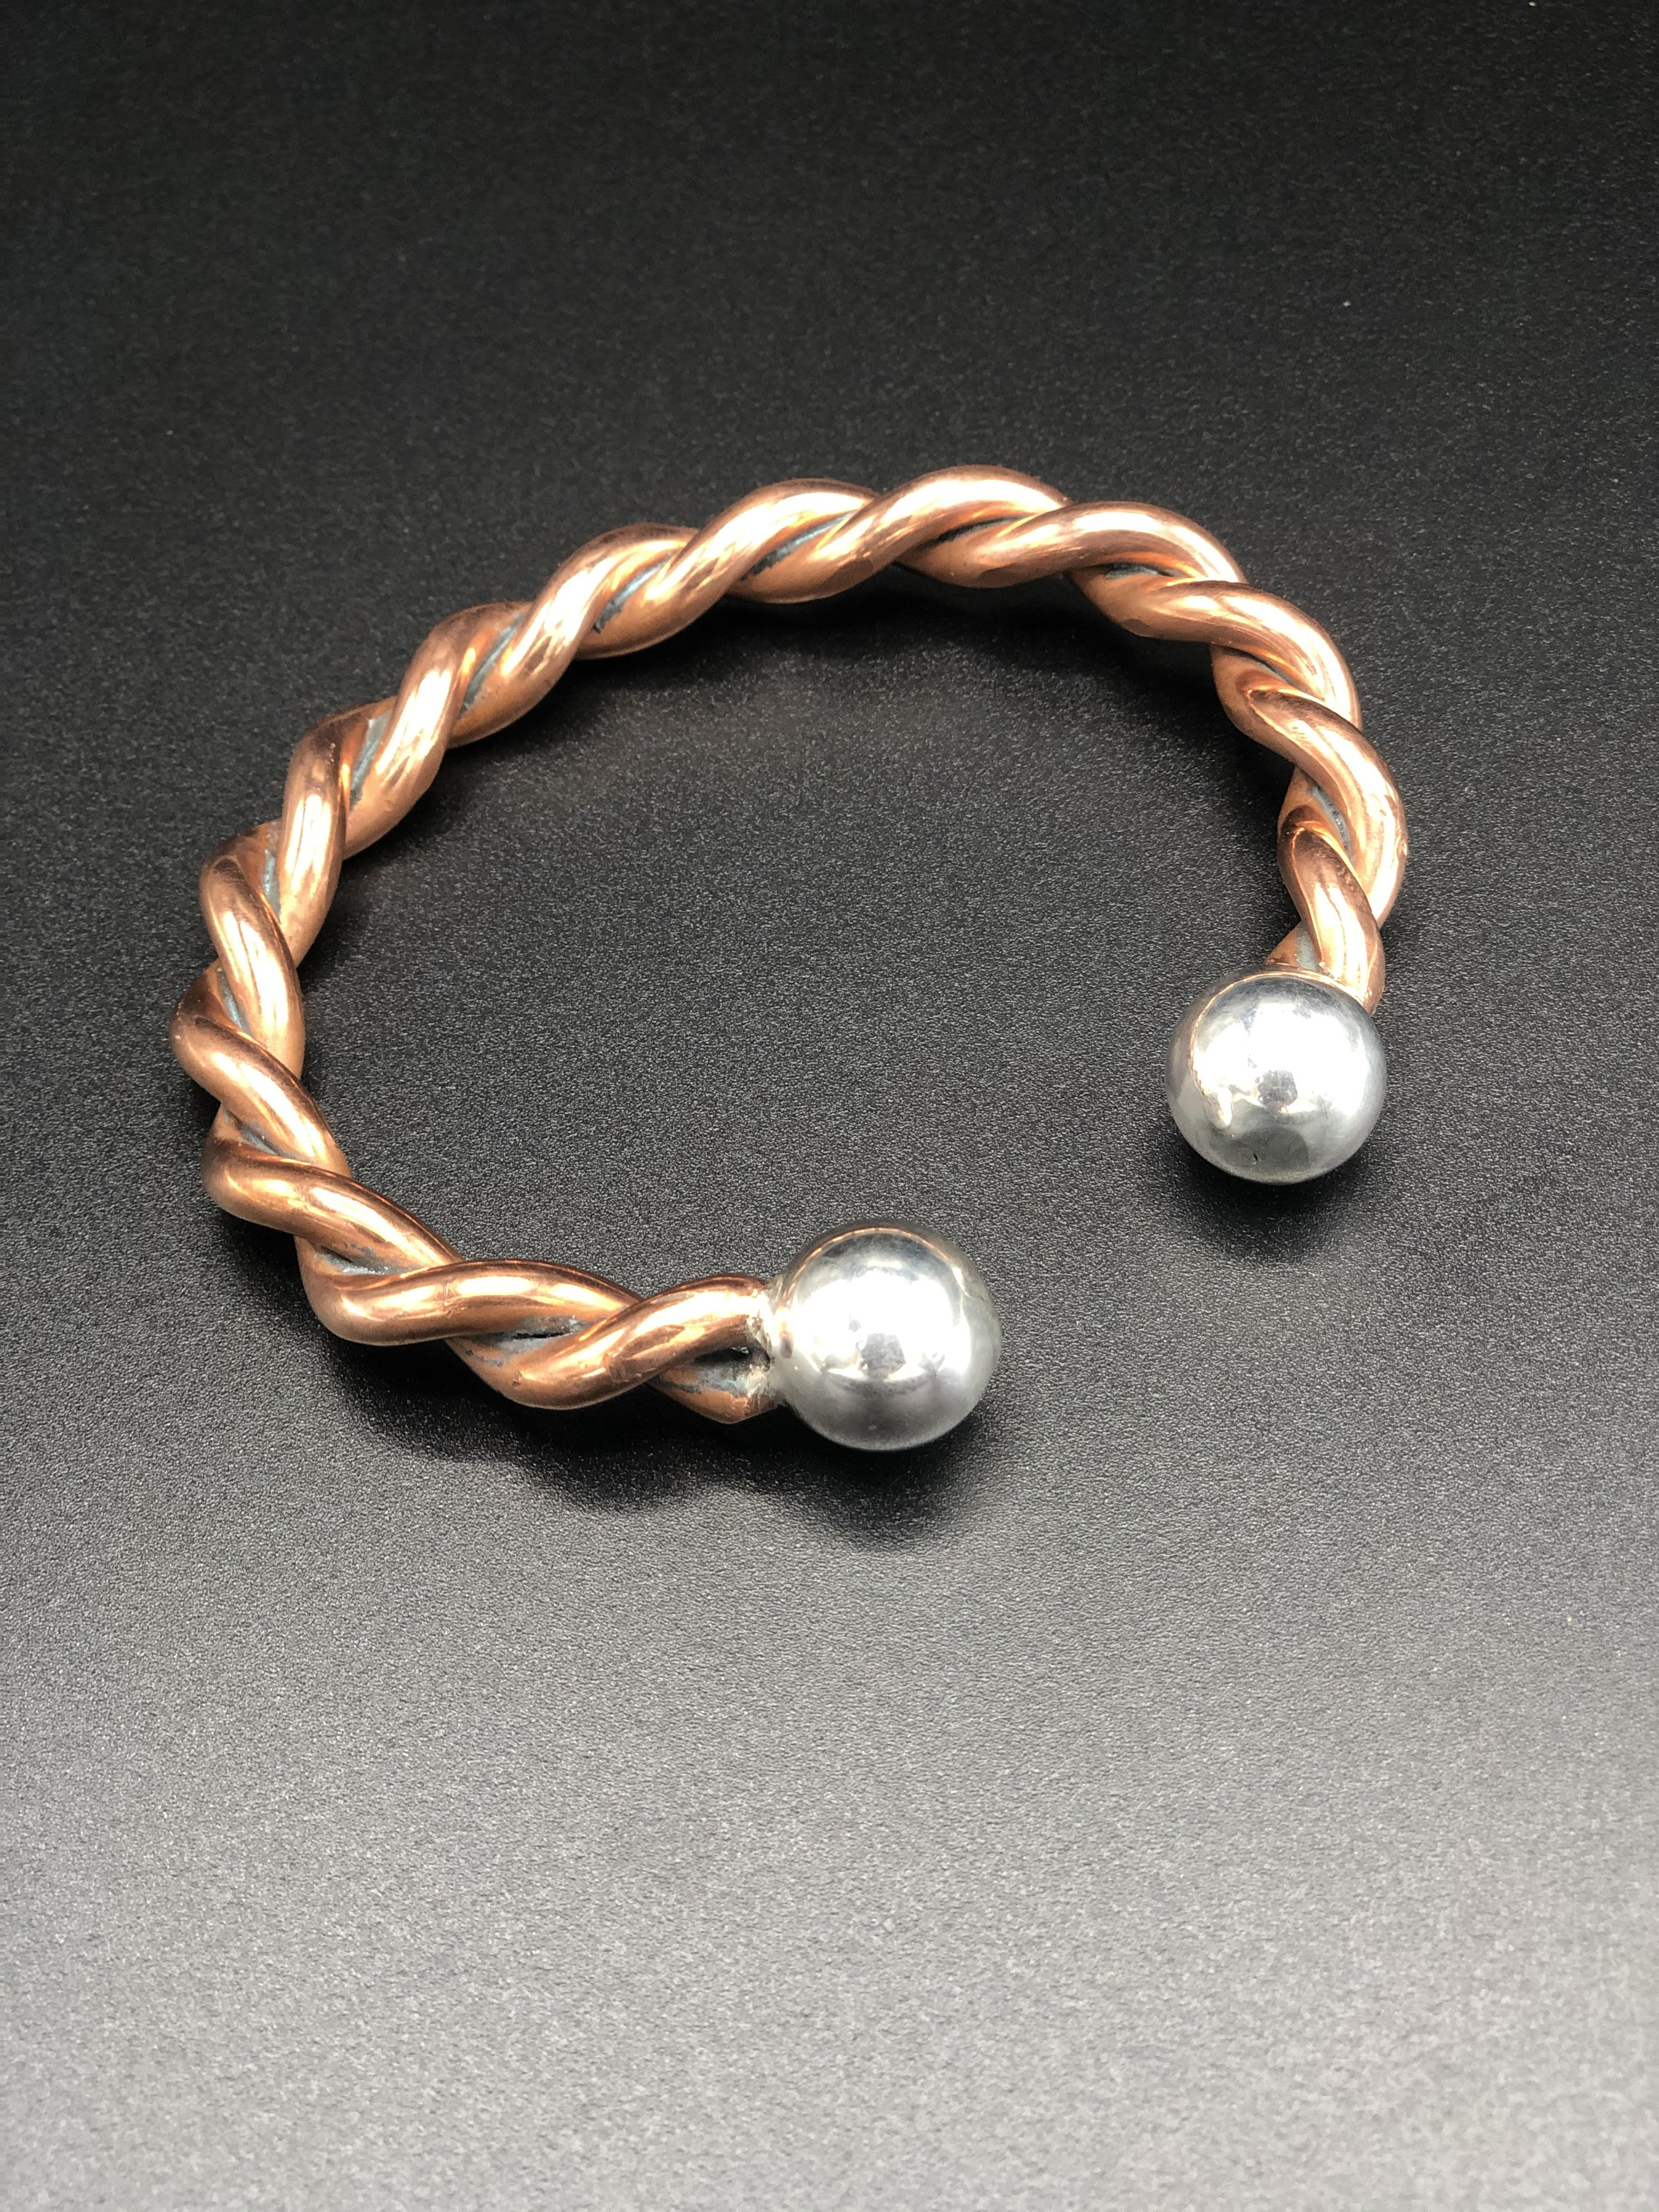 Twisted Cooper 4 gage Bangle Sterling Silver Balls